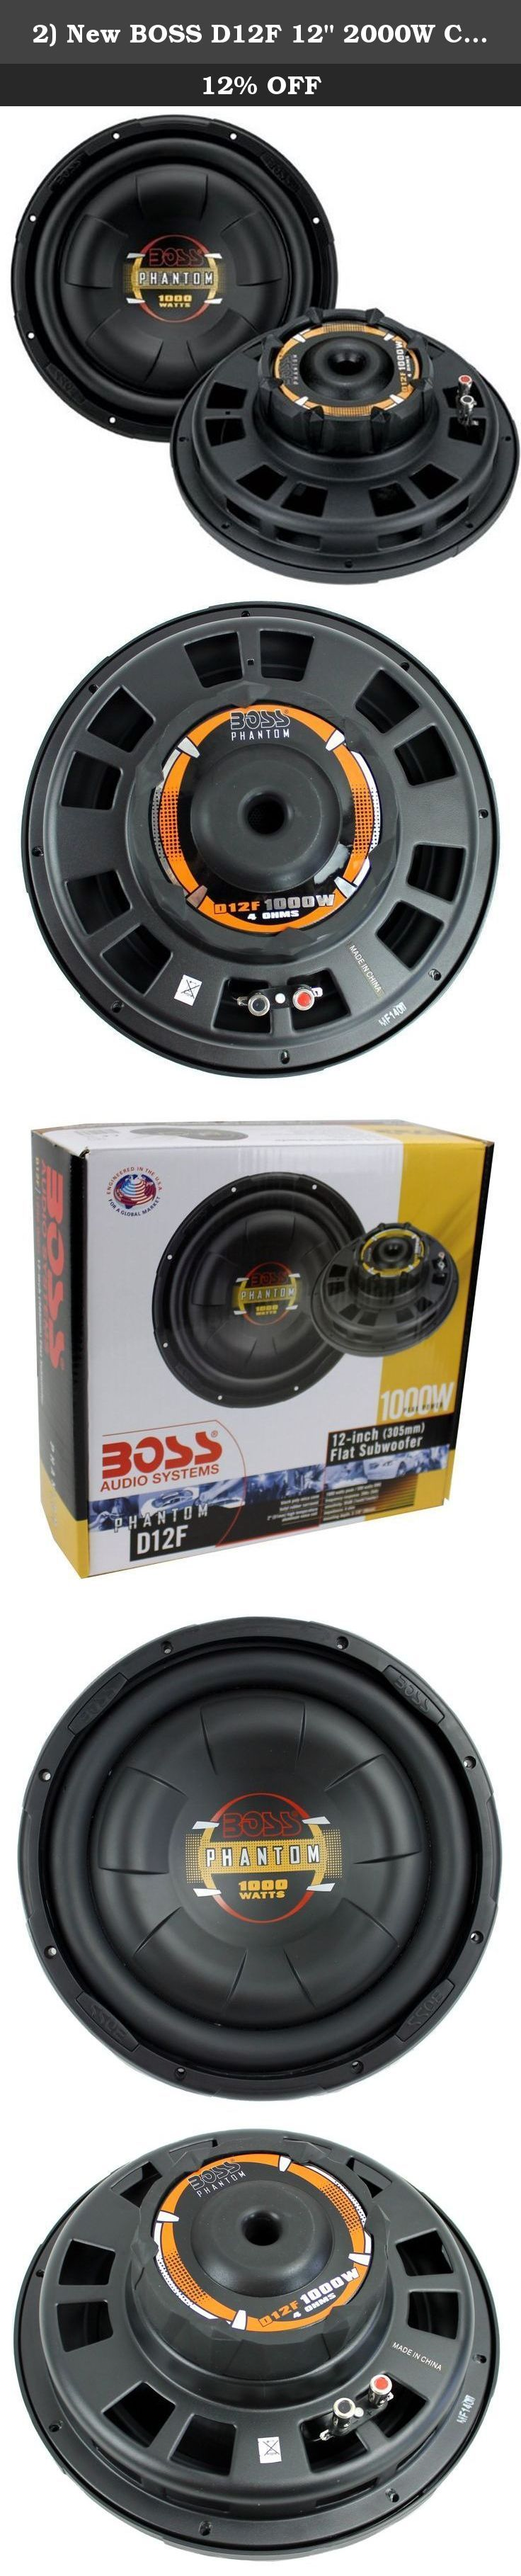 2 new boss d12f 12 2000w car audio shallow mount subwoofers power subs woofers